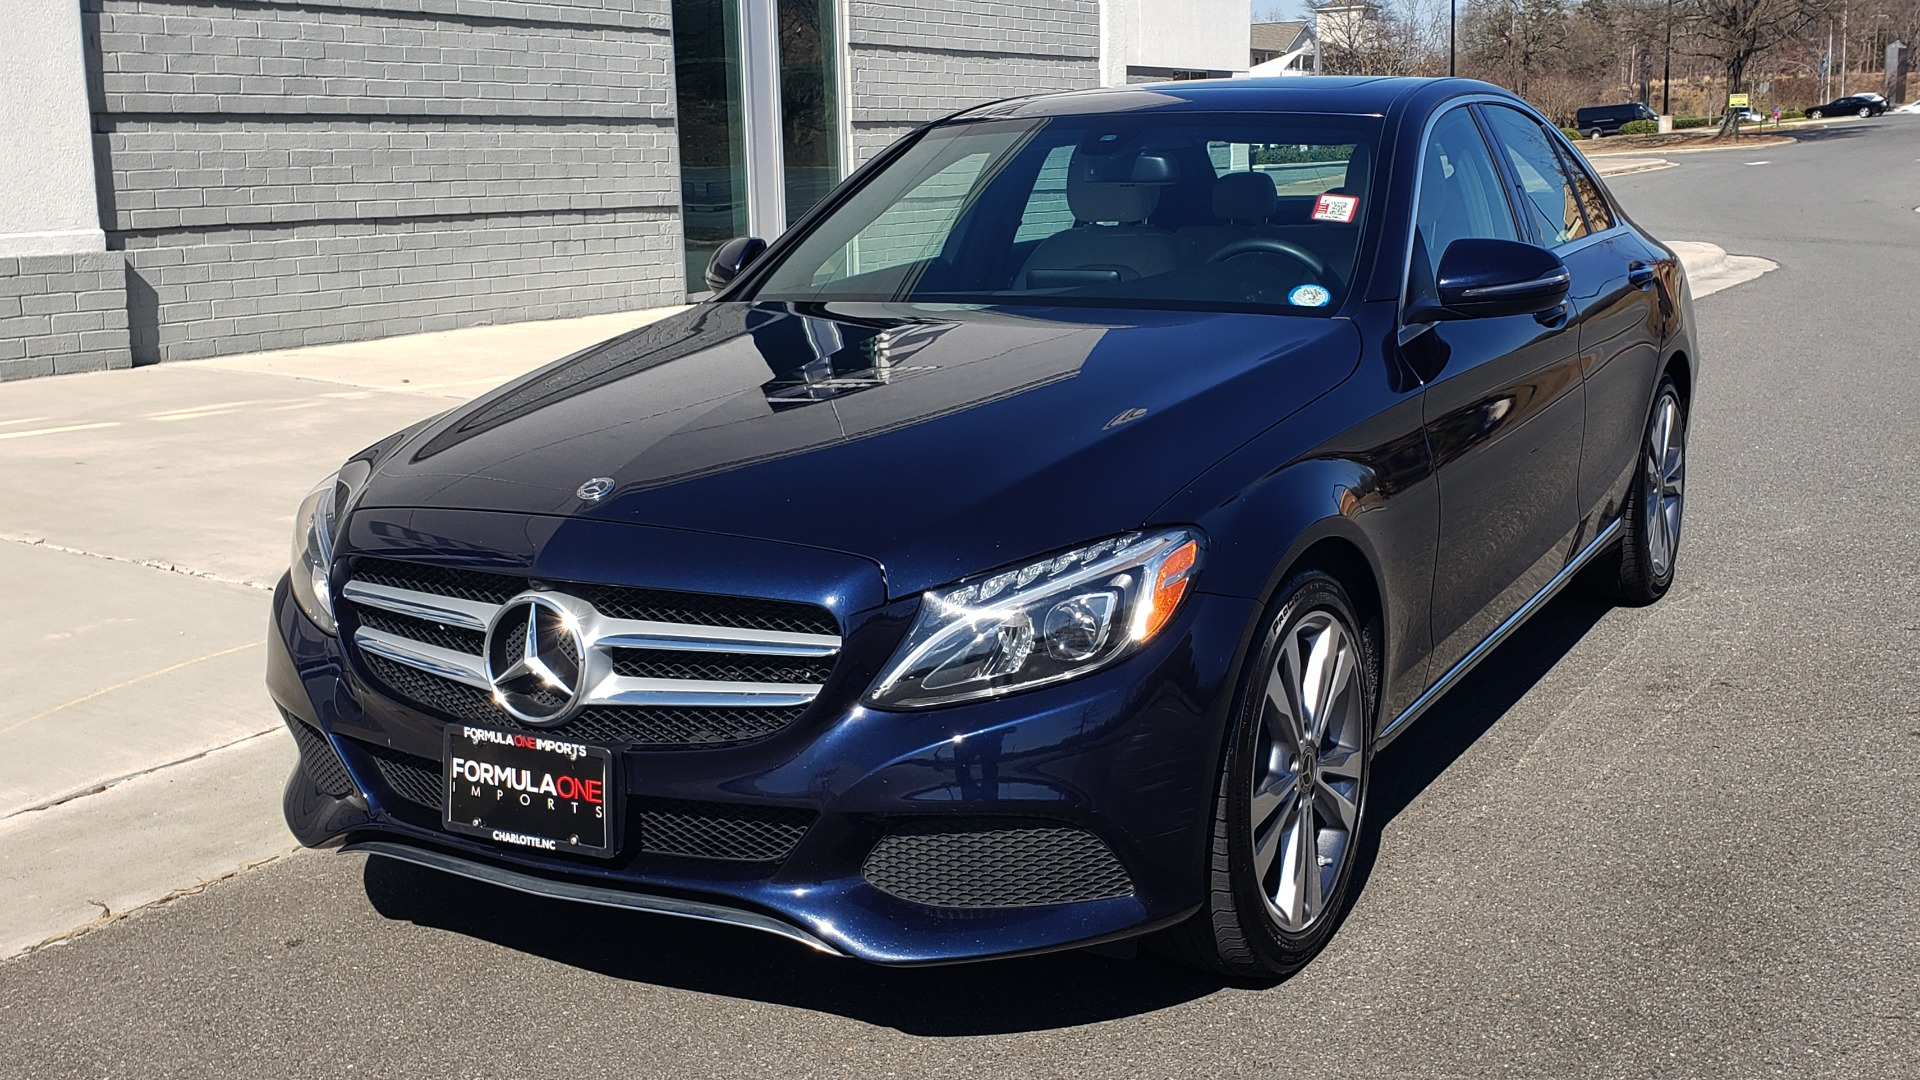 Used 2018 Mercedes-Benz C-CLASS C 300 PREMIUM / SUNROOF / BURMESTER / BSM / REARVIEW for sale $23,995 at Formula Imports in Charlotte NC 28227 1